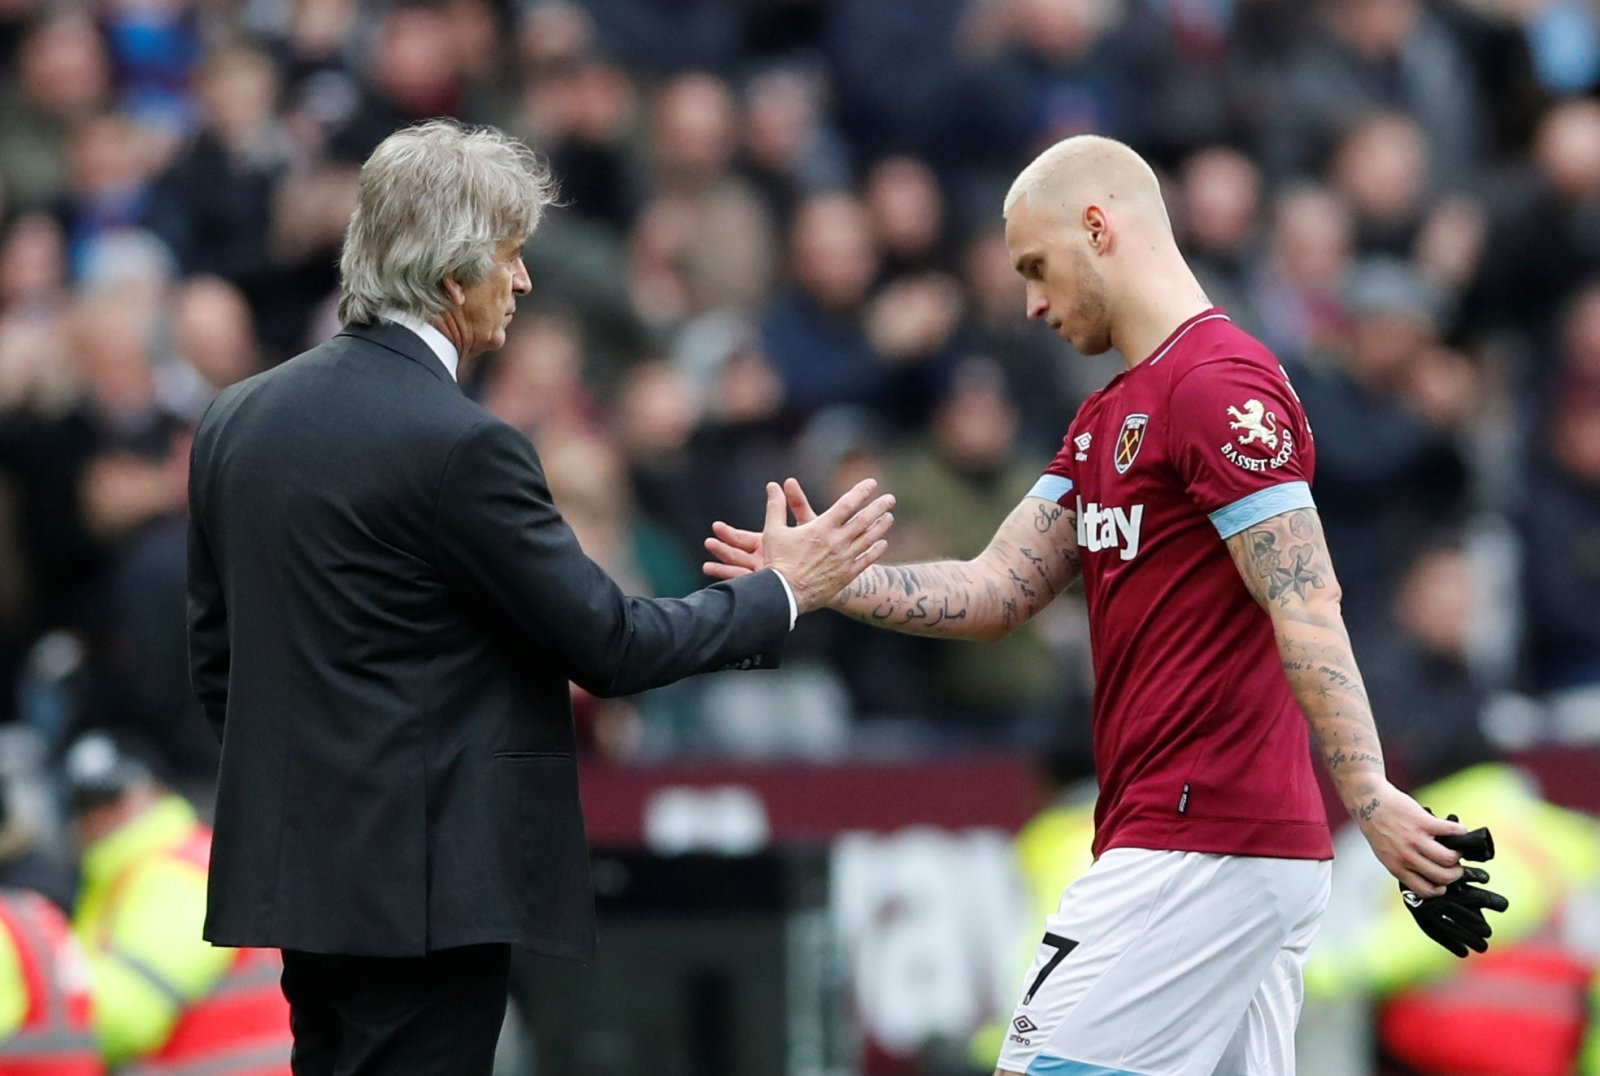 West Ham: Agreed to sell Marko Arnautovic for a 'terrible deal'